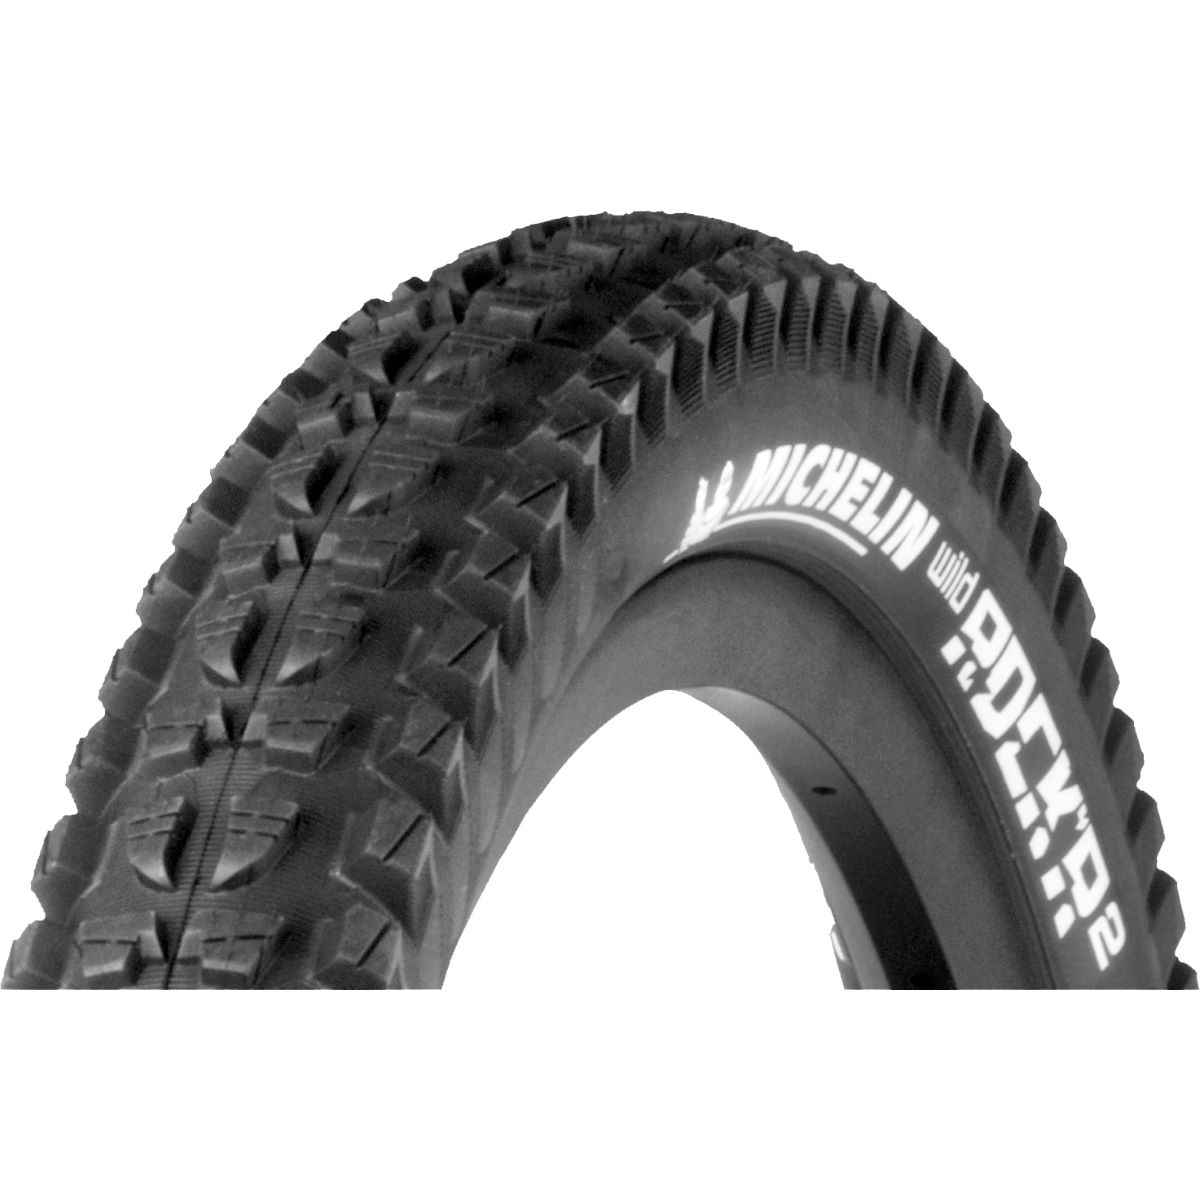 Pneu Michelin Wild Rock'r2 Advanced Reinforced Magi-X 27,5 pouces